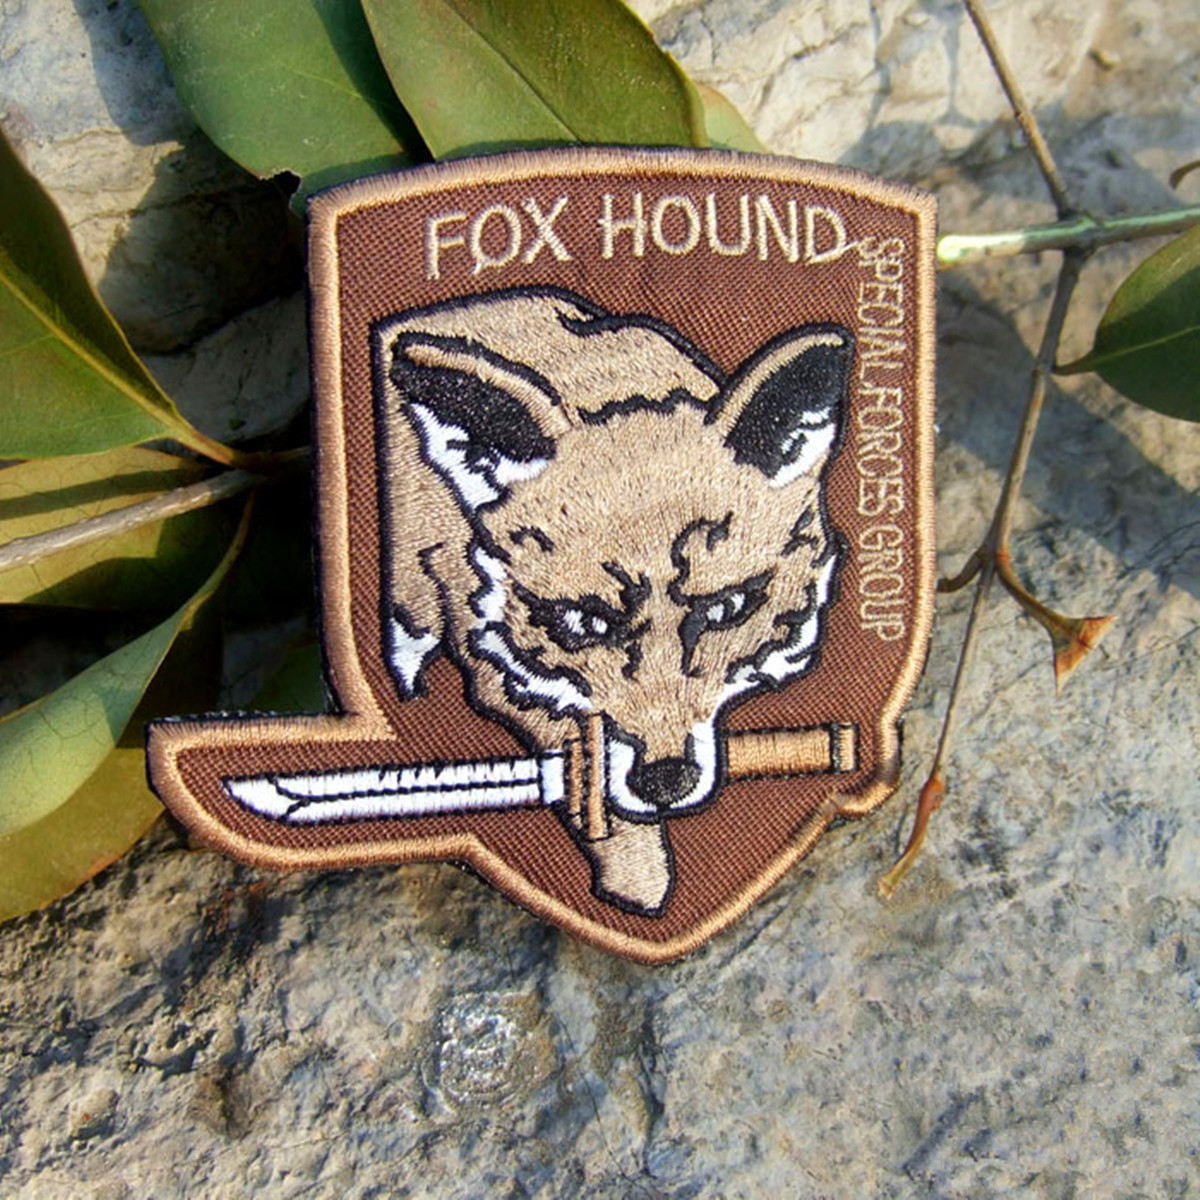 Modish Metal Gear Solid Fox Hound Force Embroided Armband Patch Fantastic